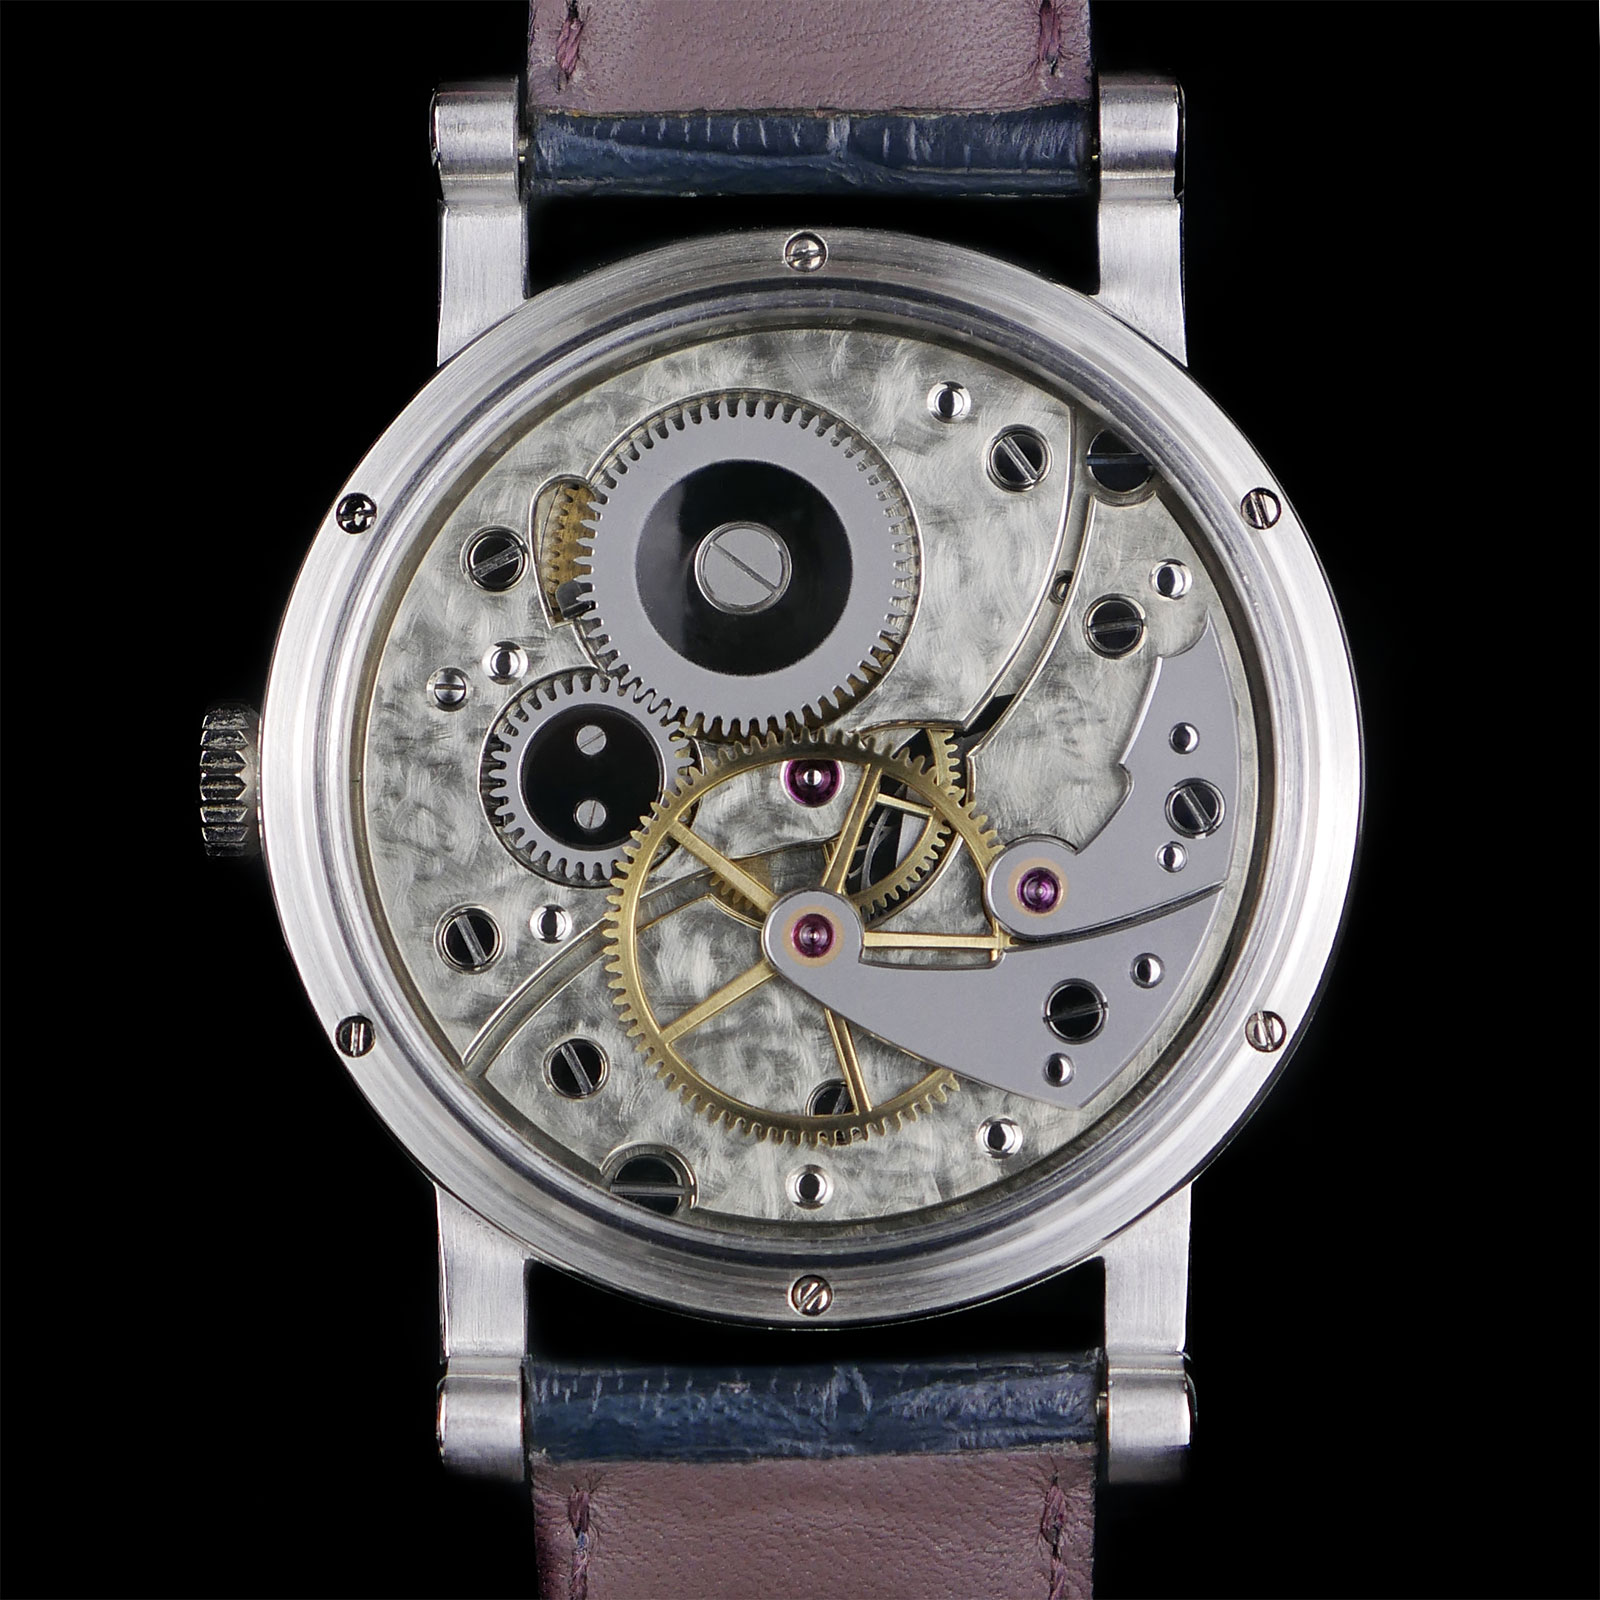 theo auffret tourbillon a paris watch 2